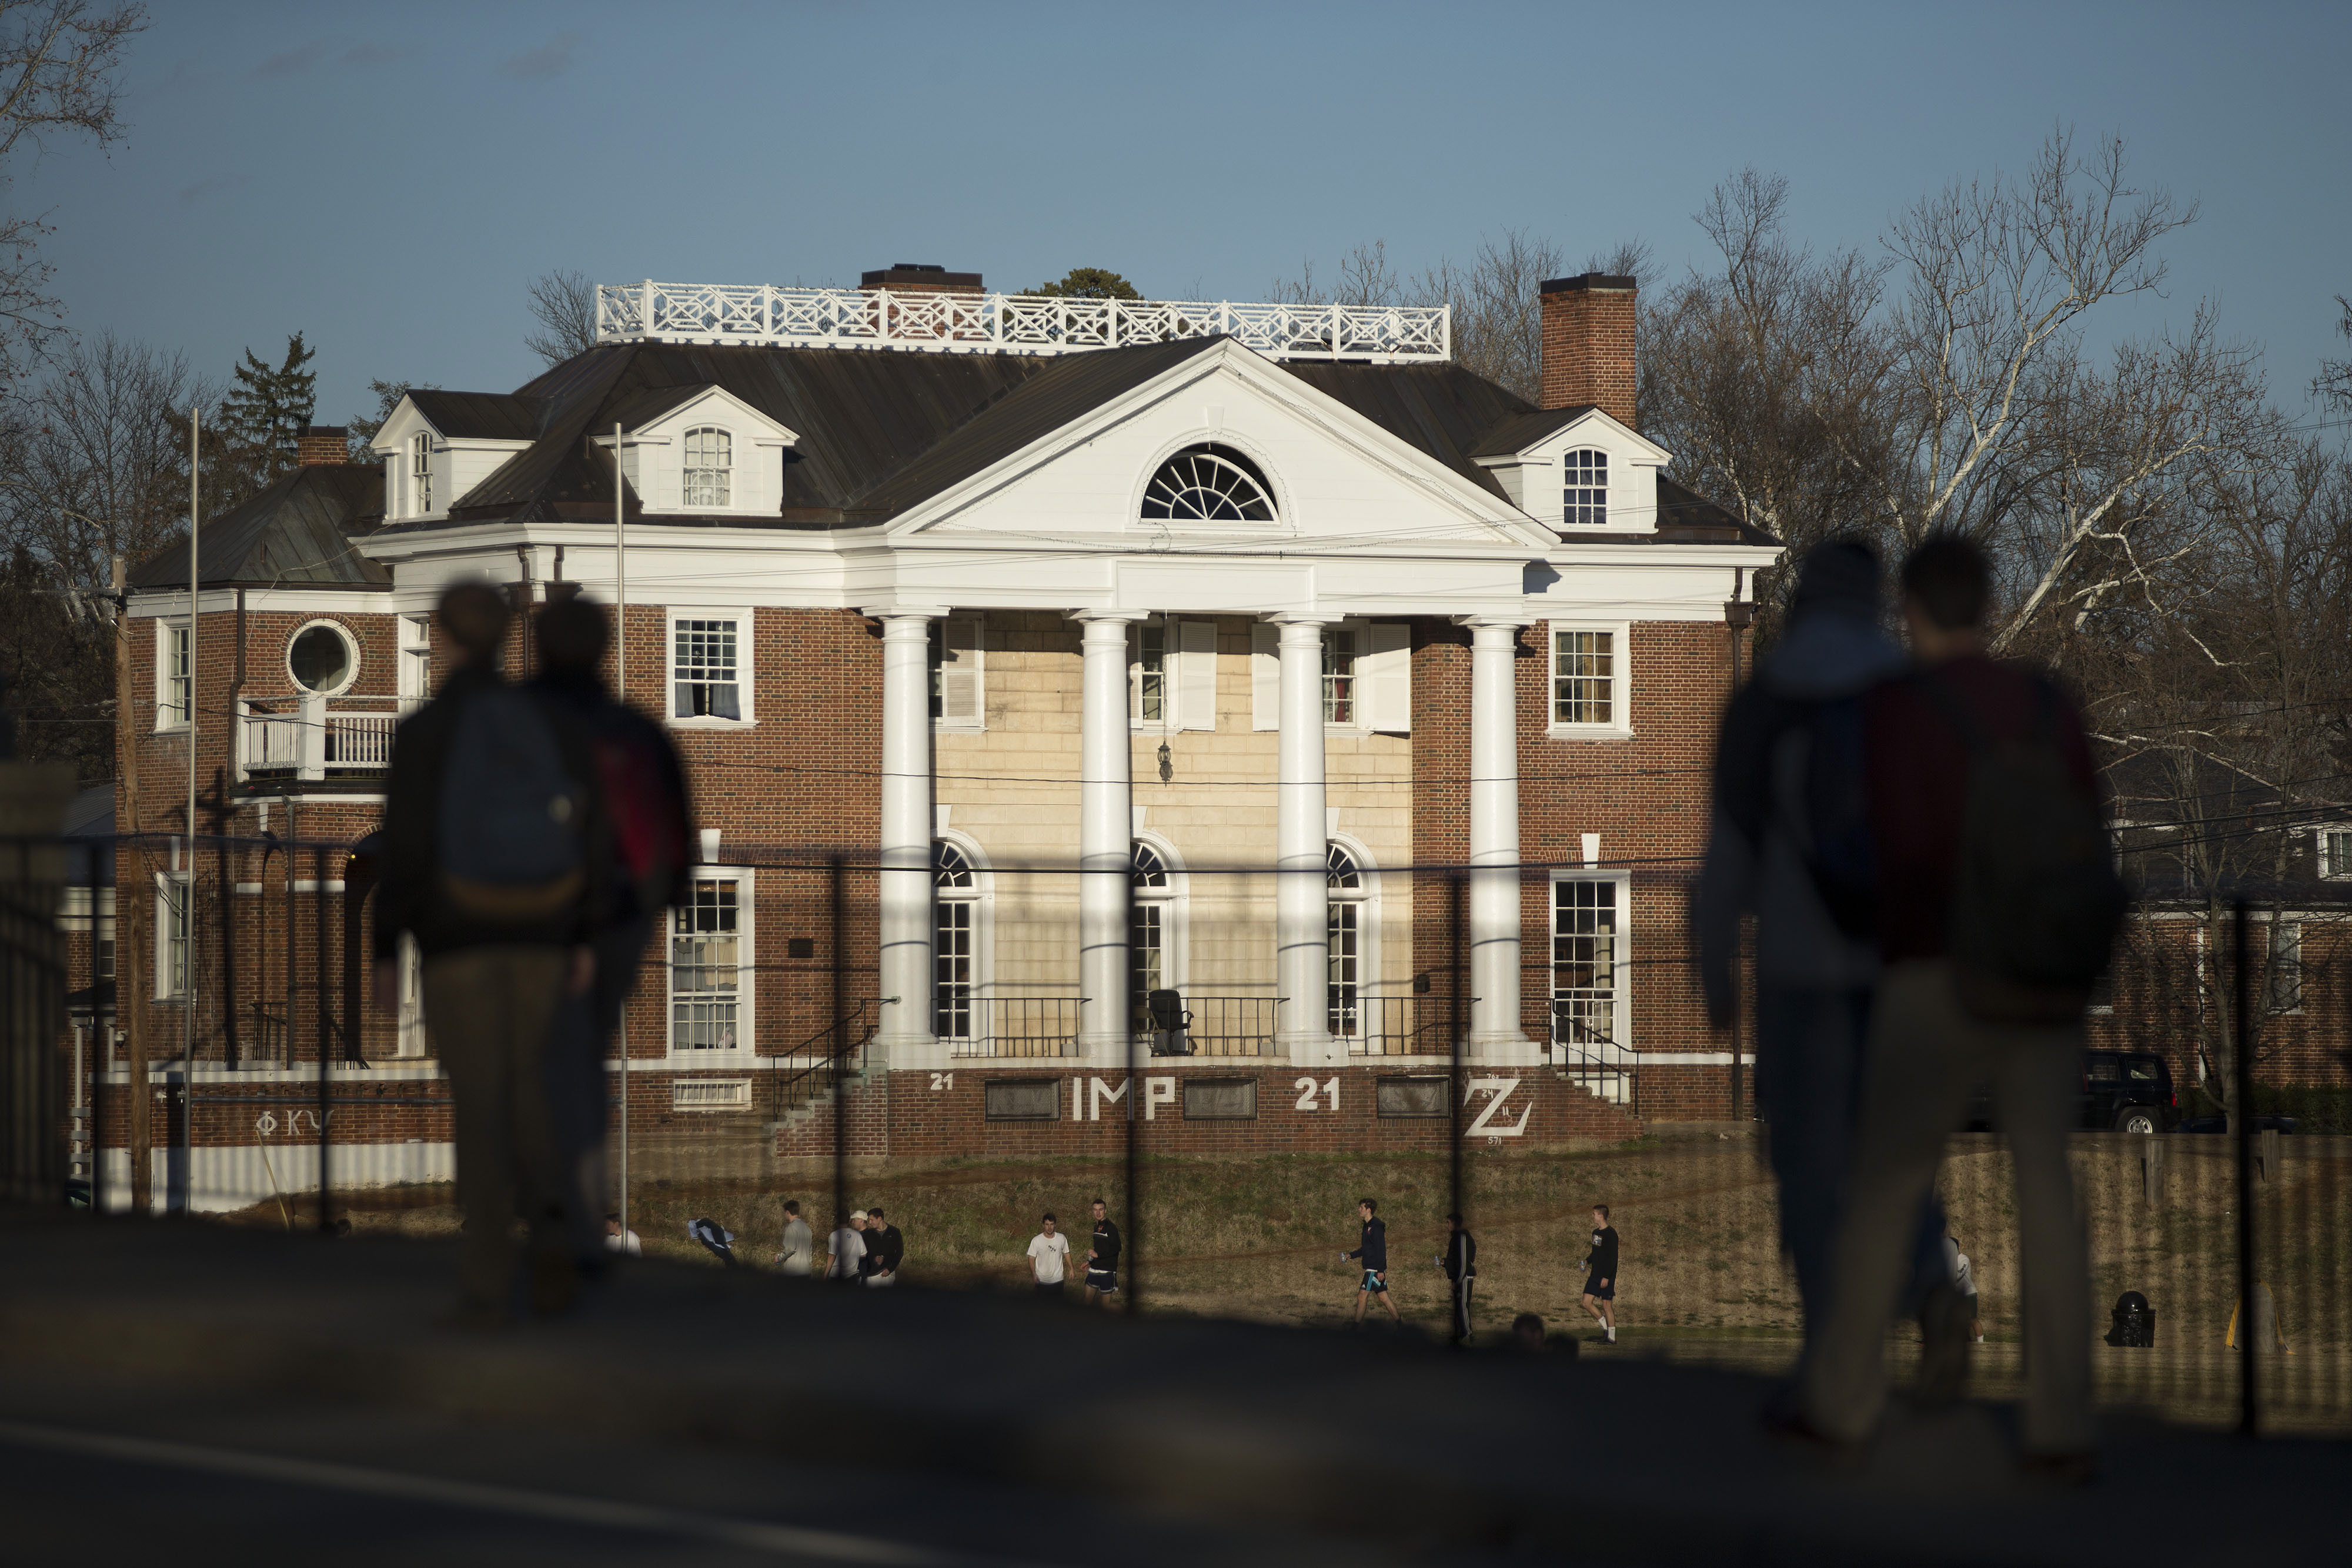 University Of Virginia Lifts Suspension On Fraternity Activities